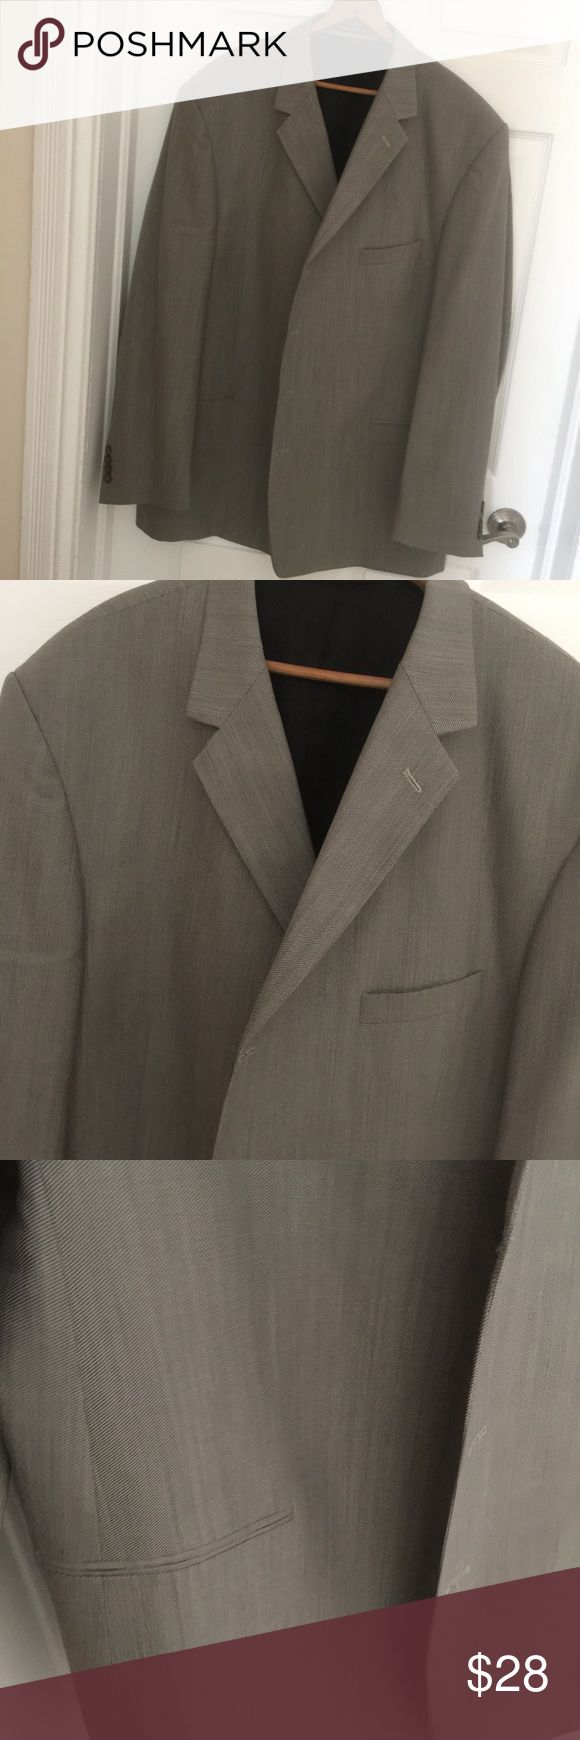 Men's Sports Jacket/Blazer 52L Nice sport jacket by Pierre Cardin.100% Worsted Wool.Very good condition.Sz 52L Pierre Cardin Suits & Blazers Sport Coats & Blazers